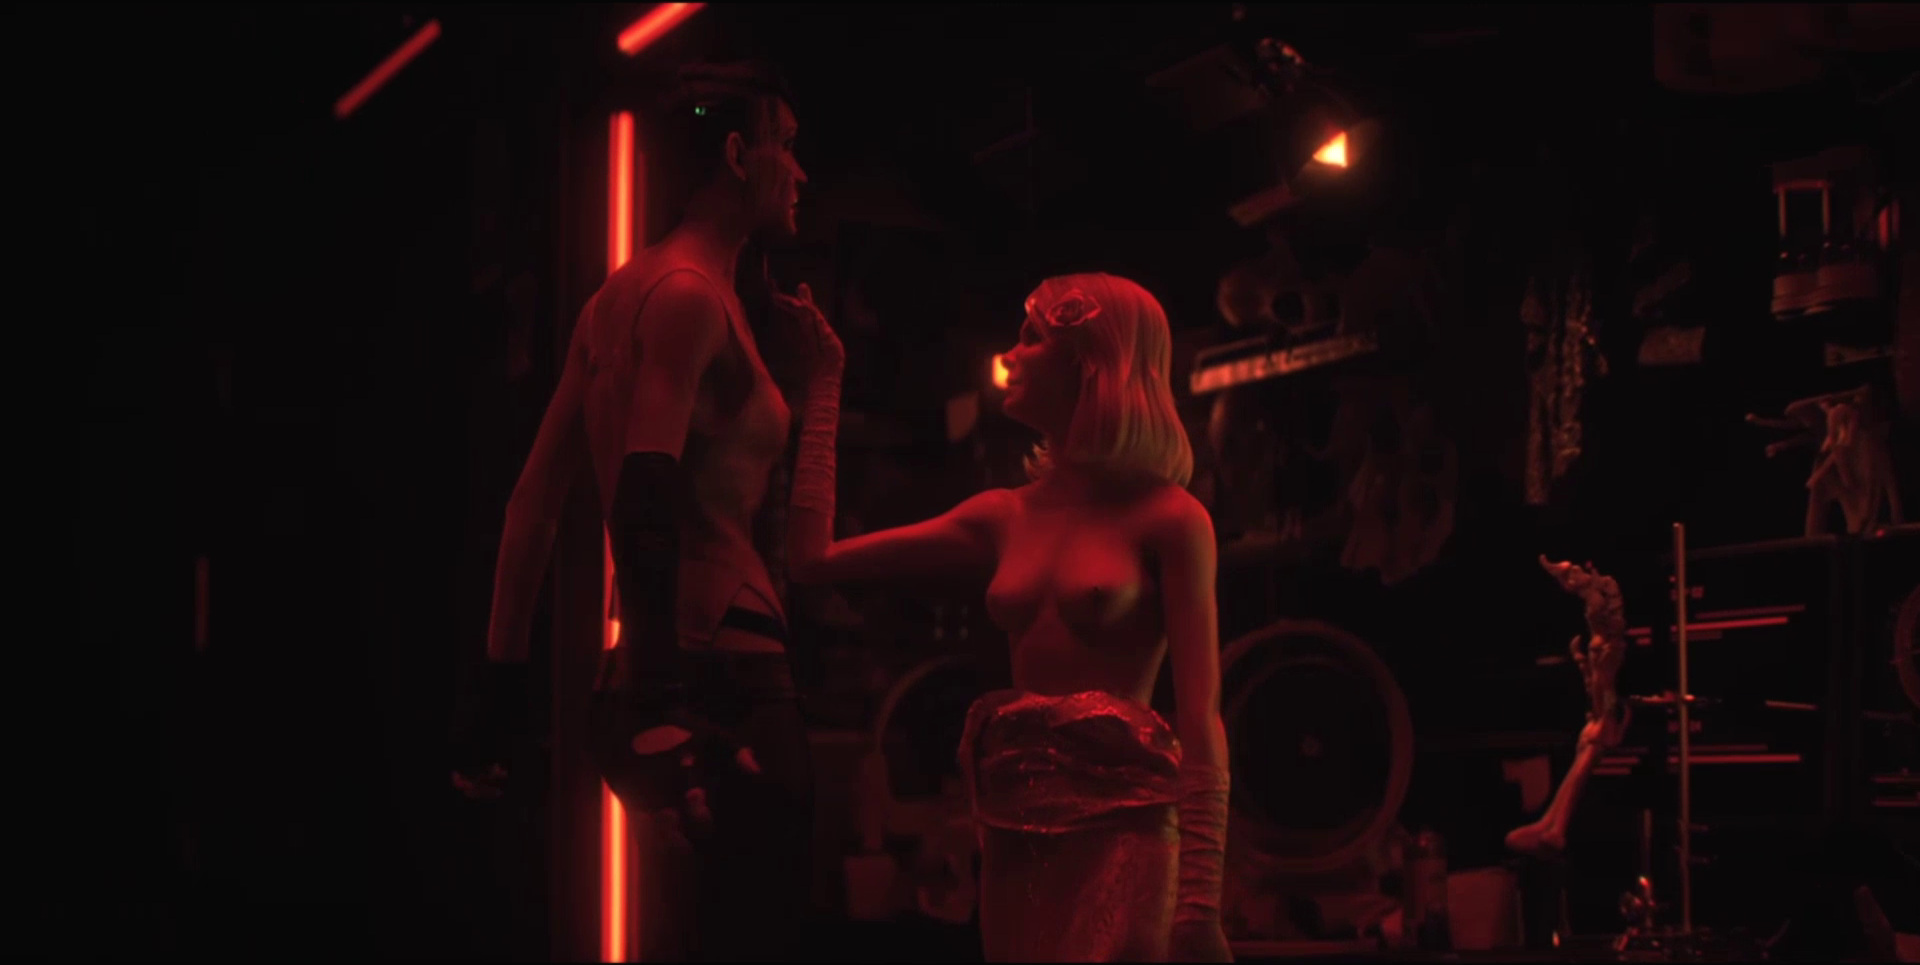 """Sonnie's Edge,""  Love Death + Robots  (Netlfix, 2019), Sonnie, distracted, is impaled"